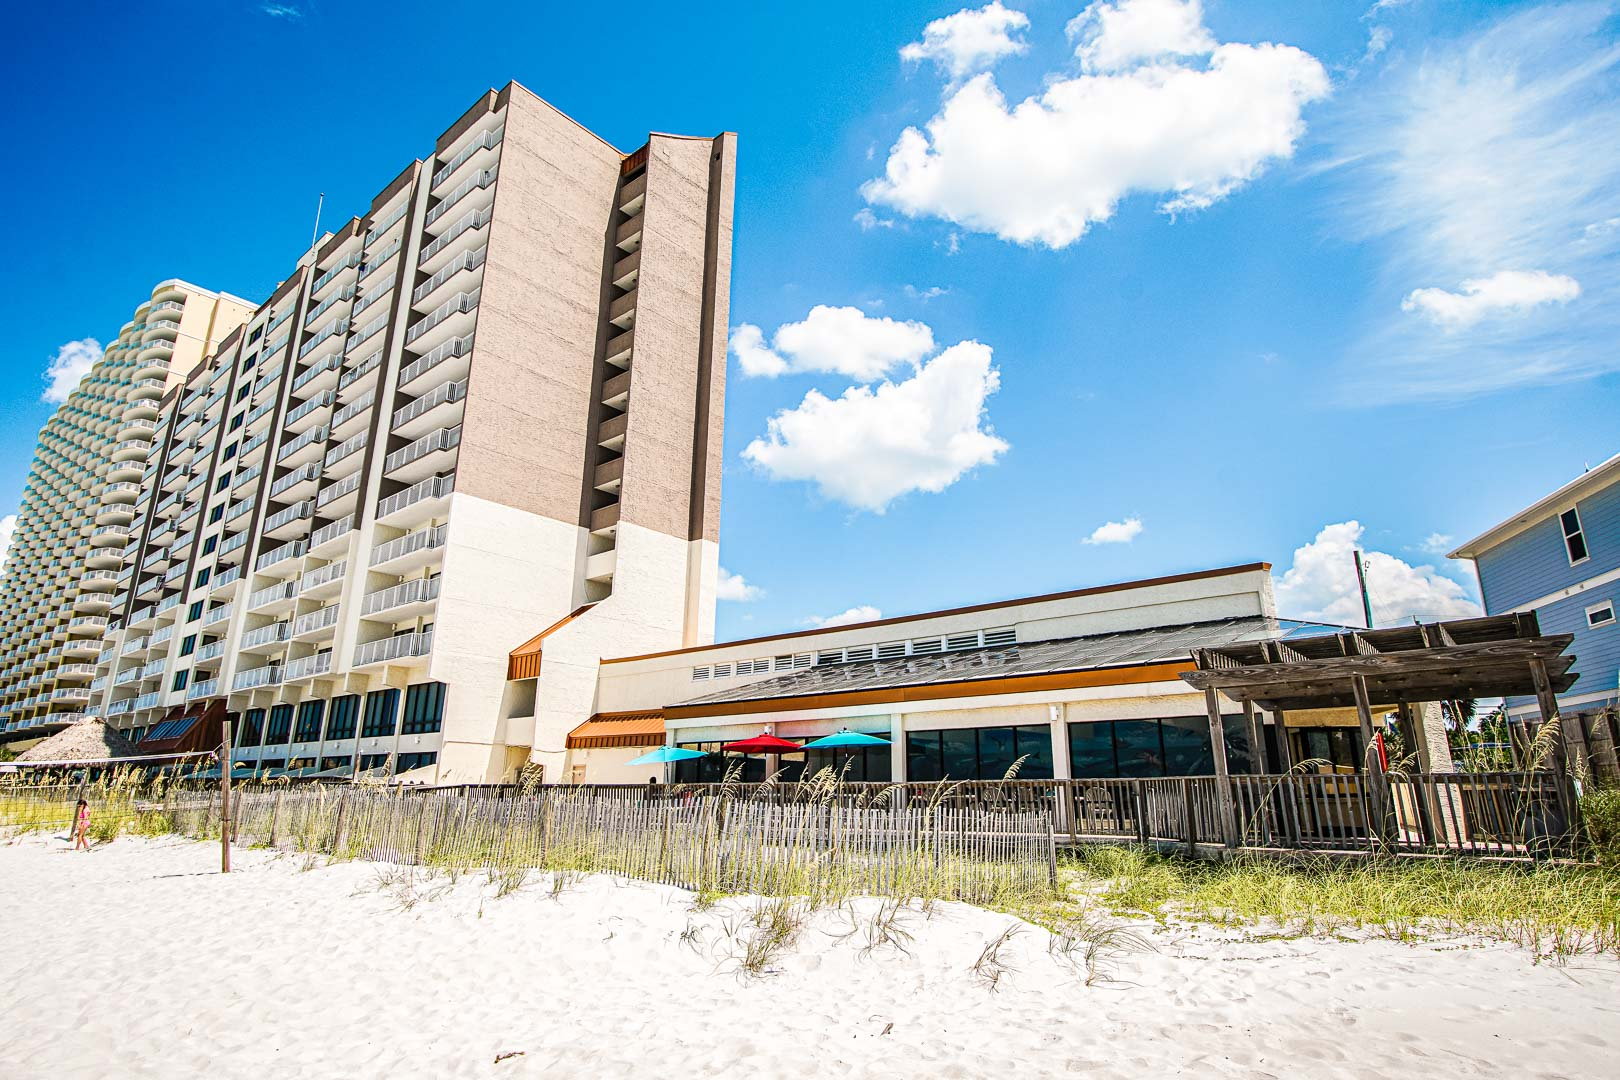 An exterior view of VRI's Landmark Holiday Beach Resort in Panama City, Florida.